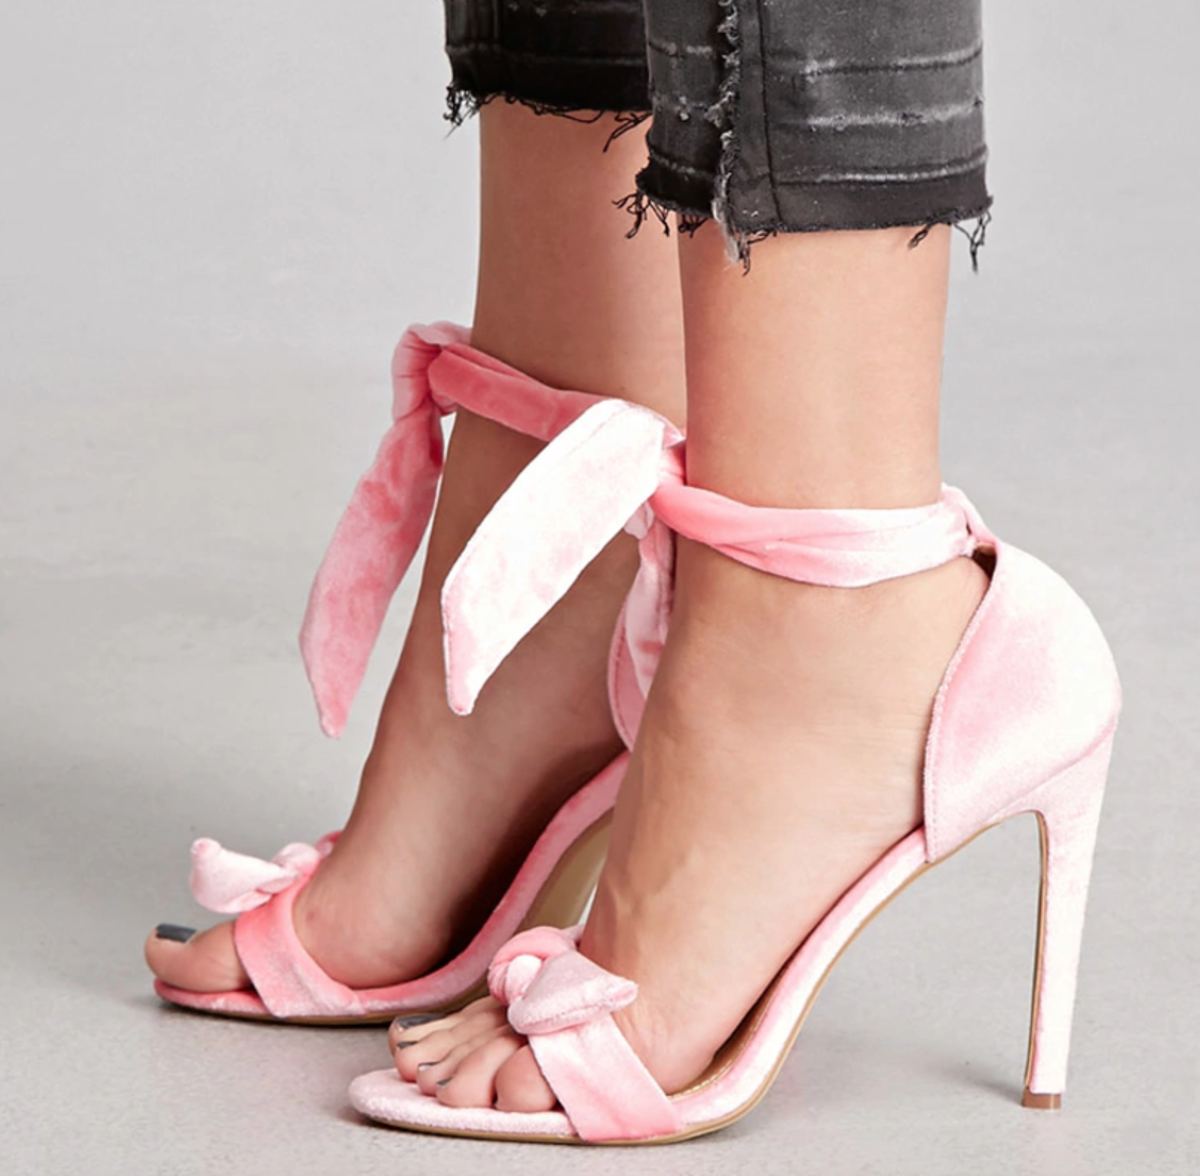 Shop the Item: Velvet Heels ($35) - Such a feminine and flirty novelty heel